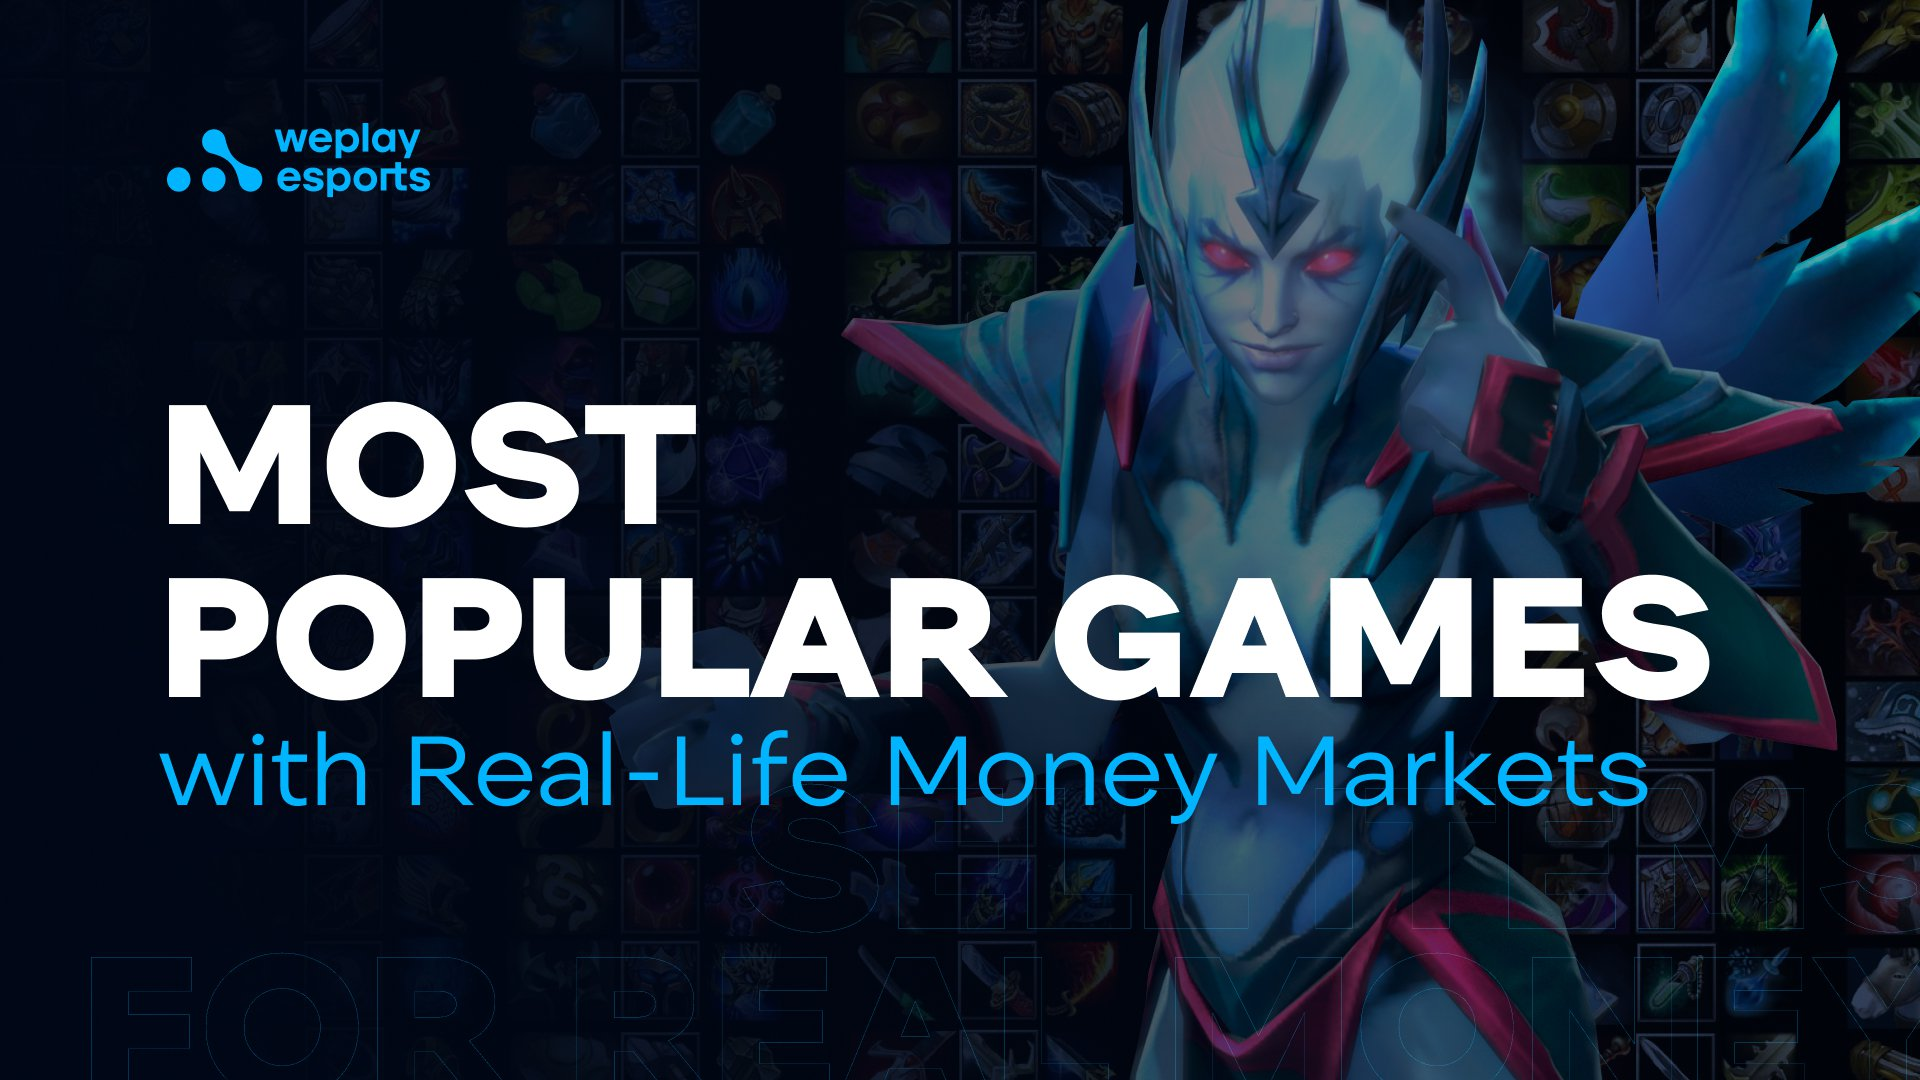 Most Popular Games with Real-Life Money Markets